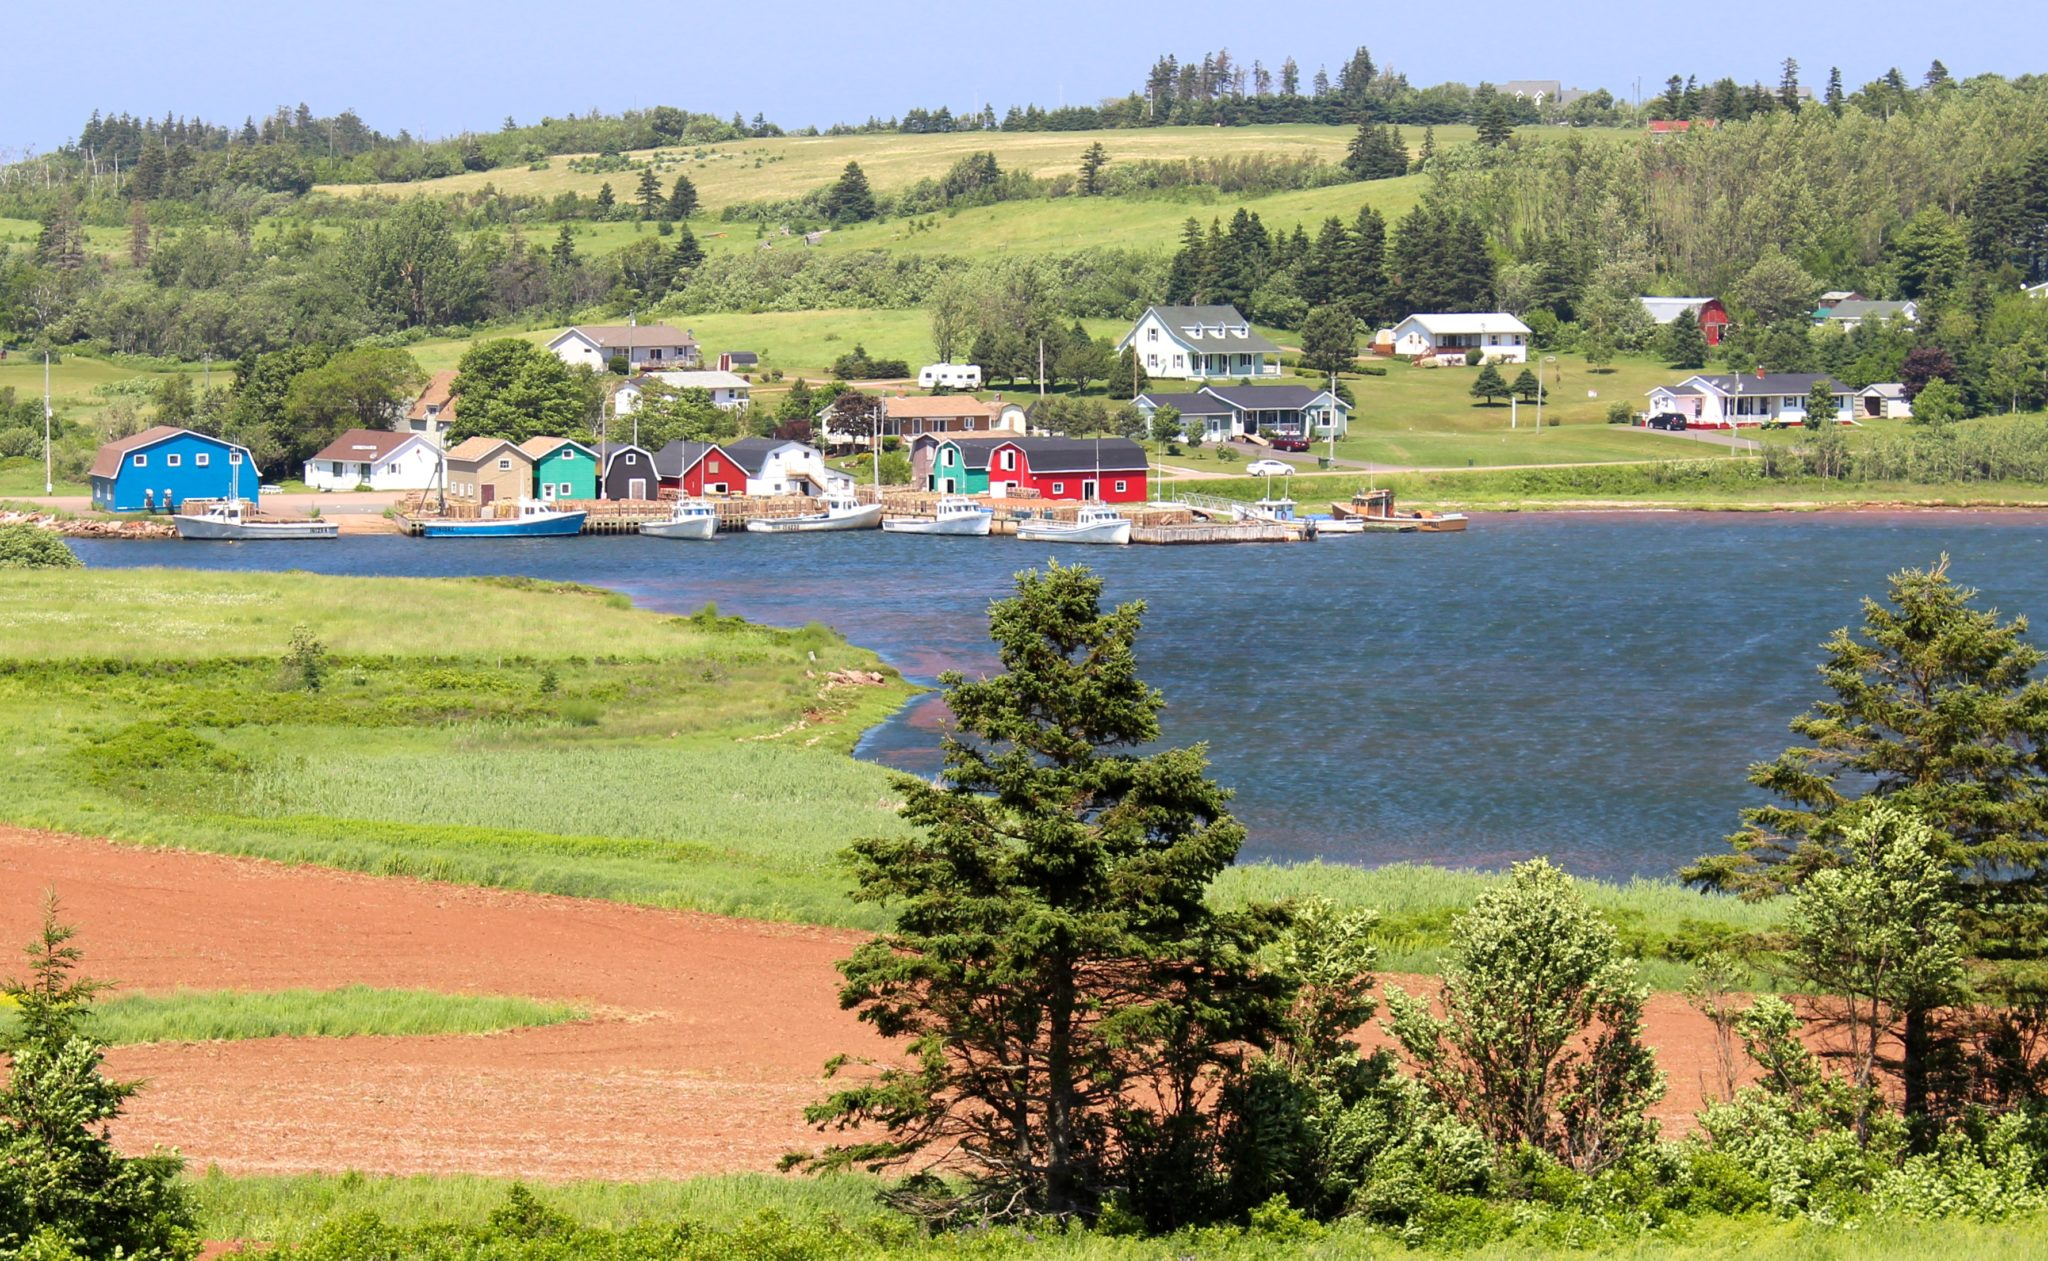 The tiny fishing village of French River.